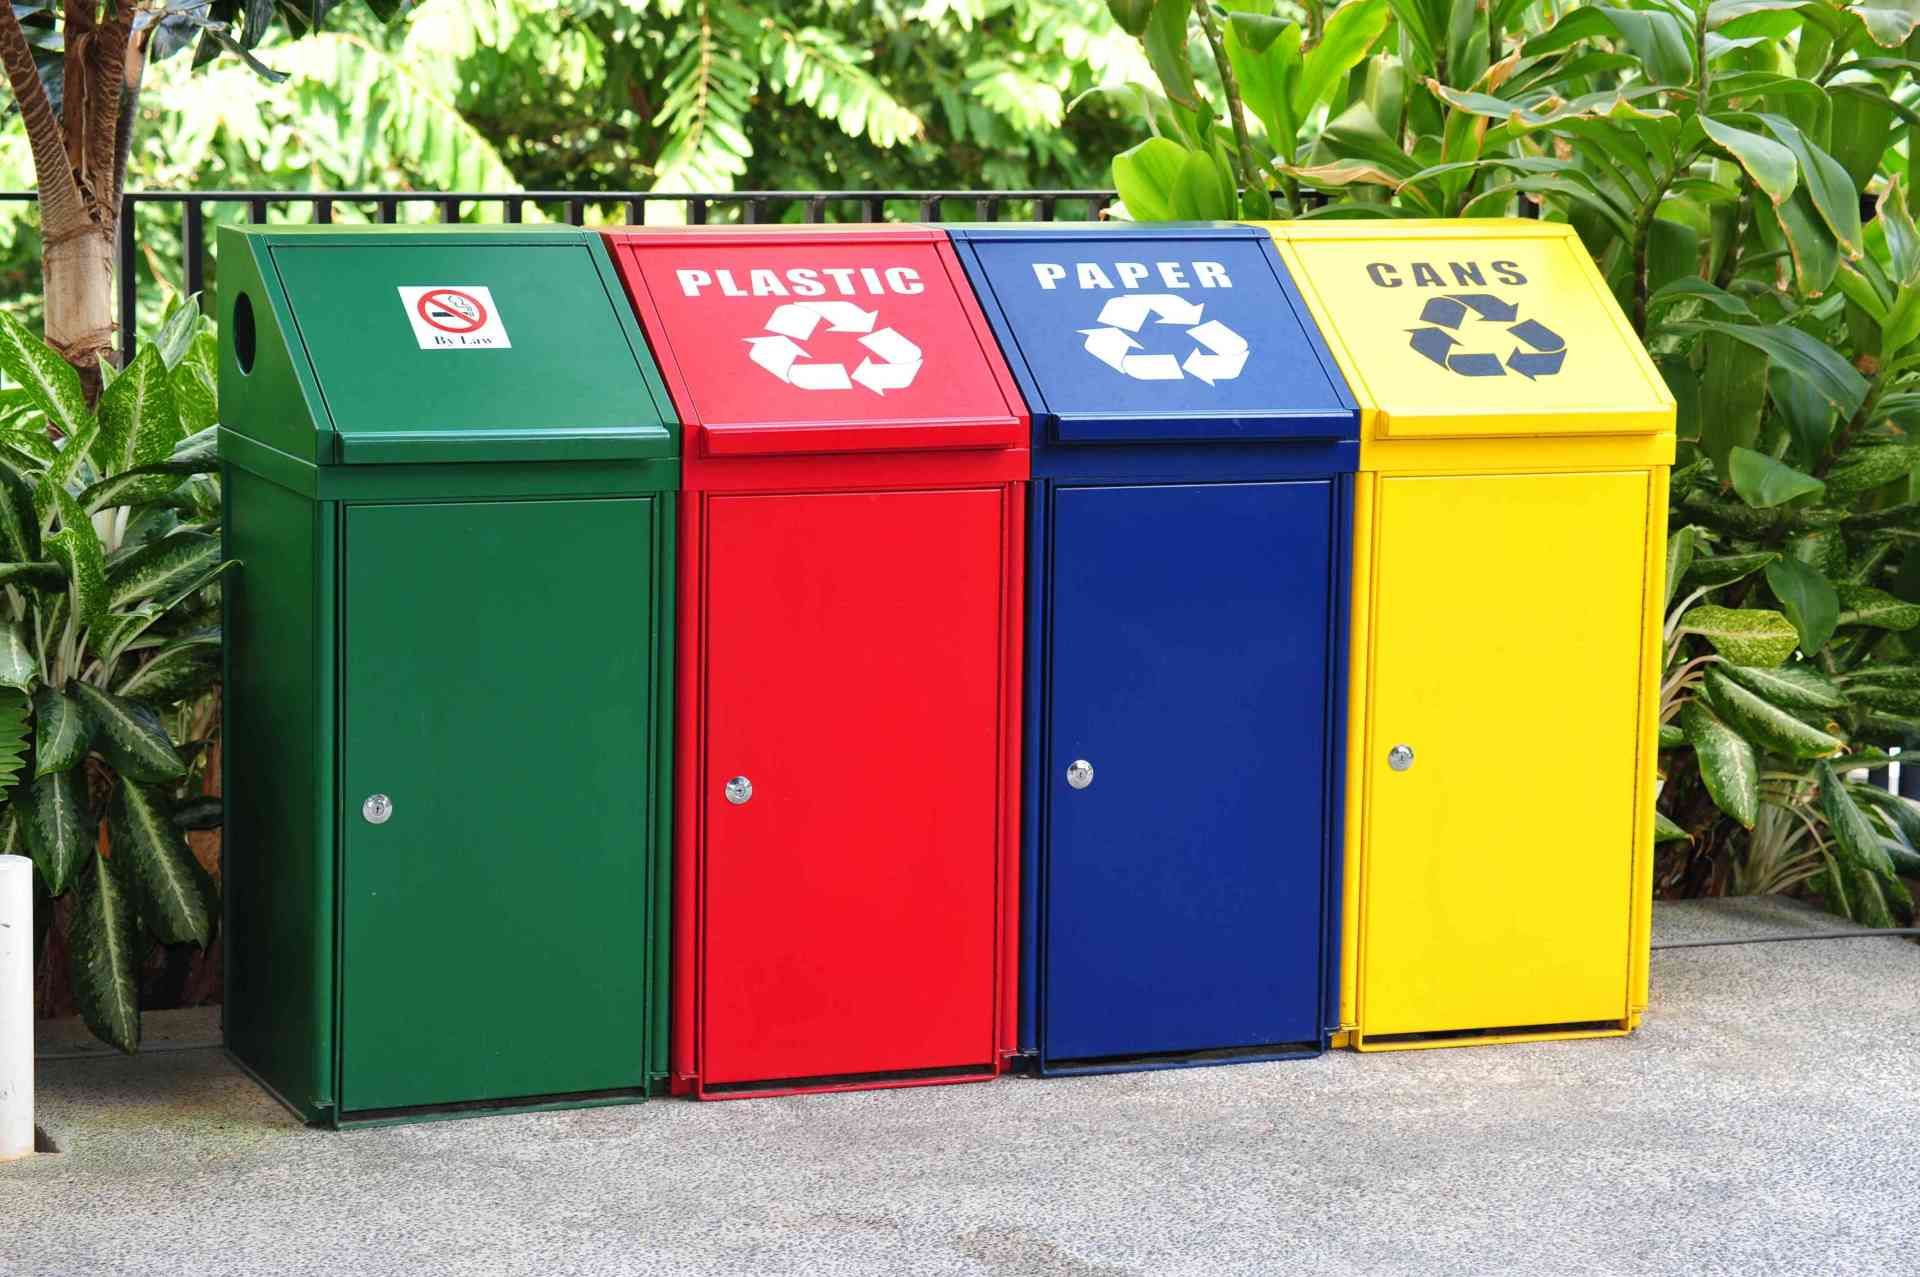 5 Easy And Smart Ways To Keep The Environment Clean Recycling